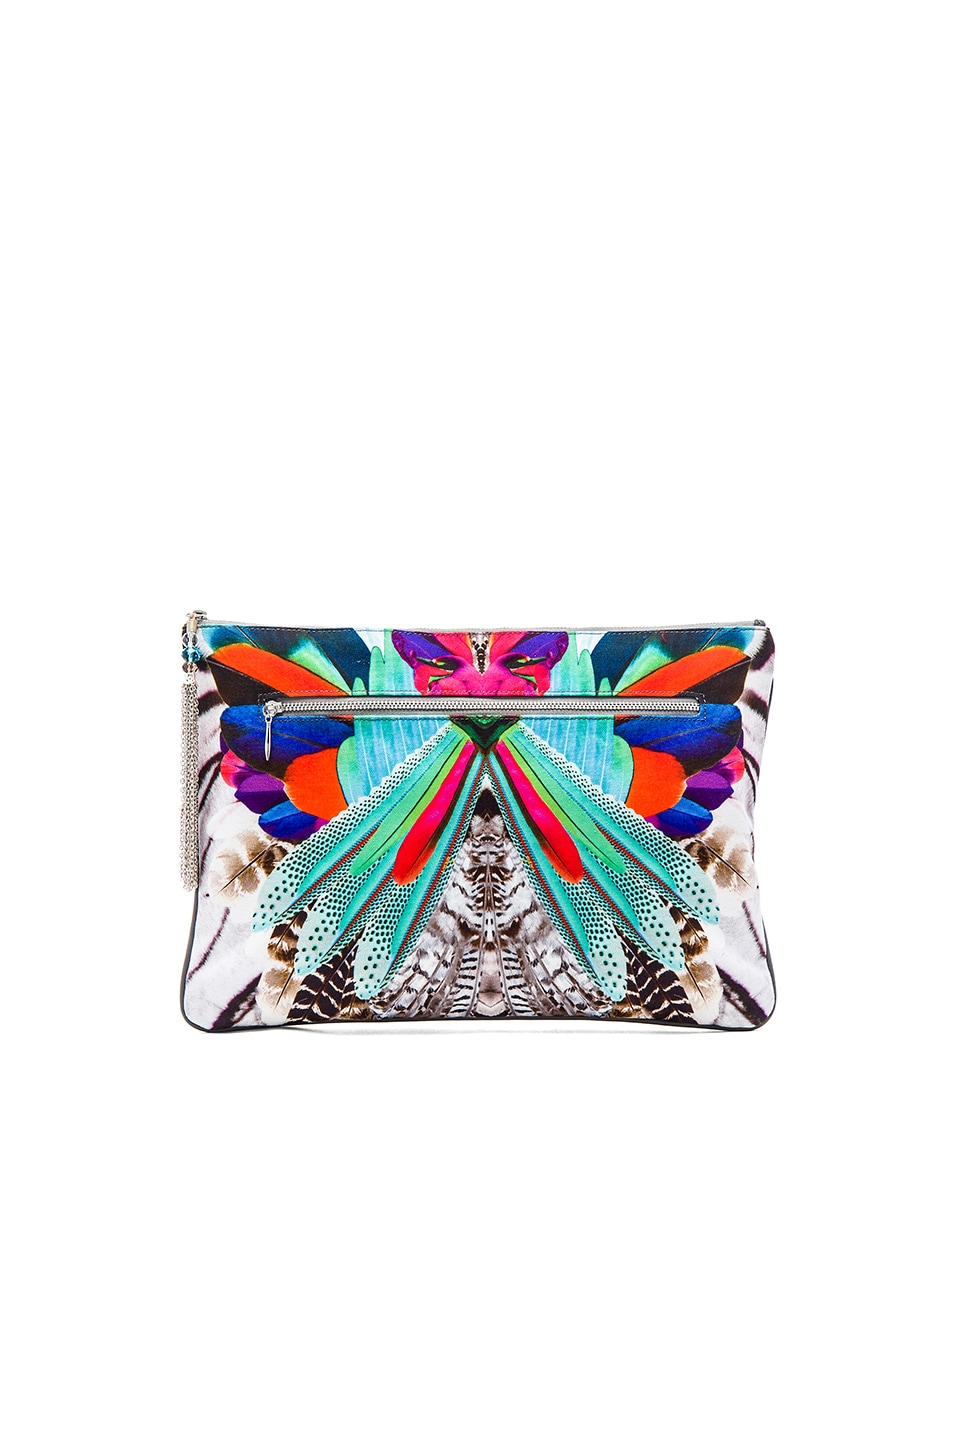 Camilla Large Canvas Clutch in Soaring